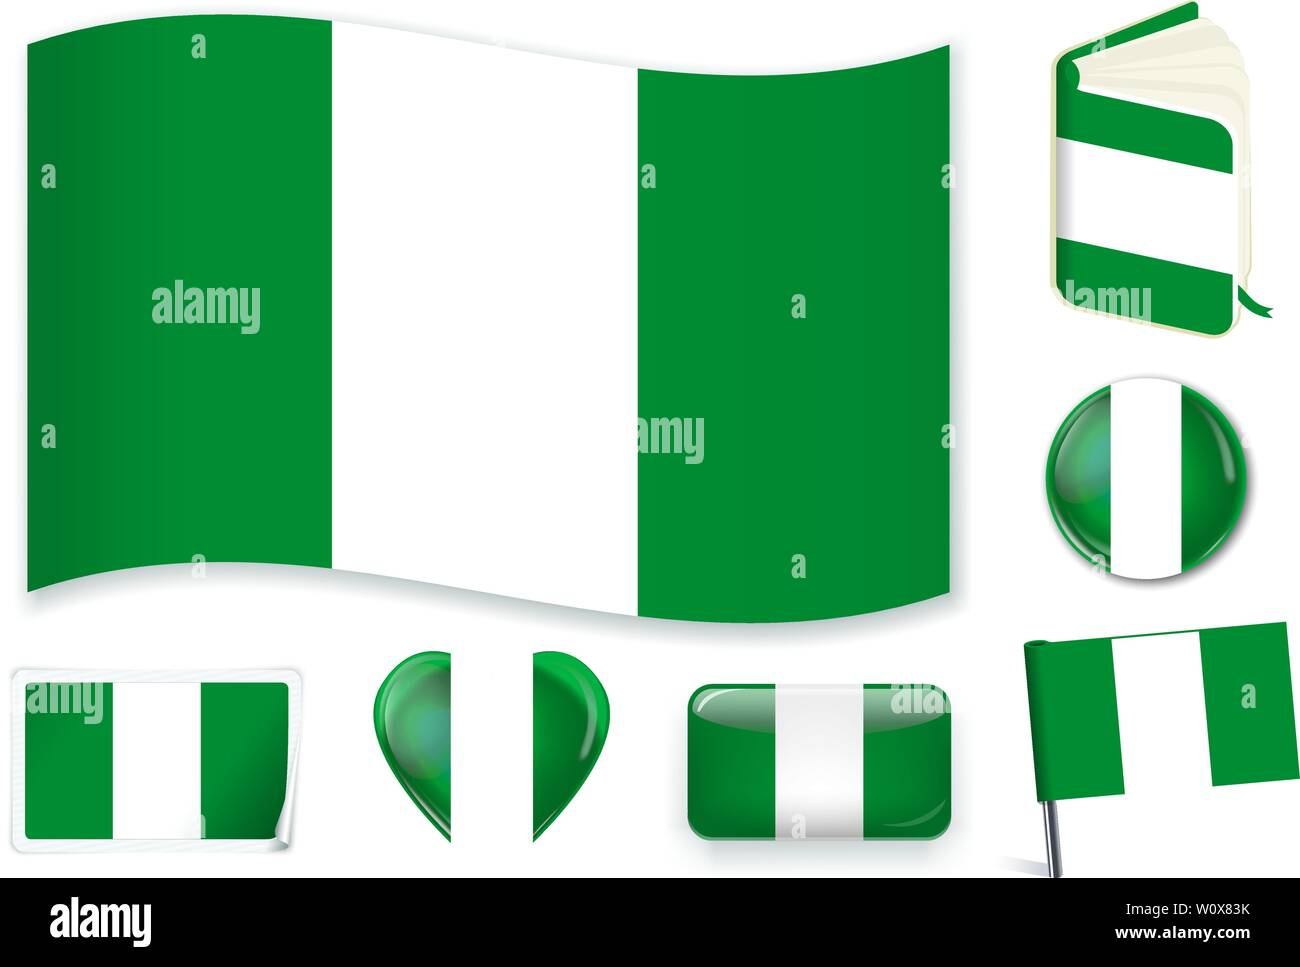 Nigeria national flag. Vector illustration. 3 layers. Shadows, flat flag, lights and shadows. Collection of 220 world flags. Accurate colors. Easy changes. - Stock Vector